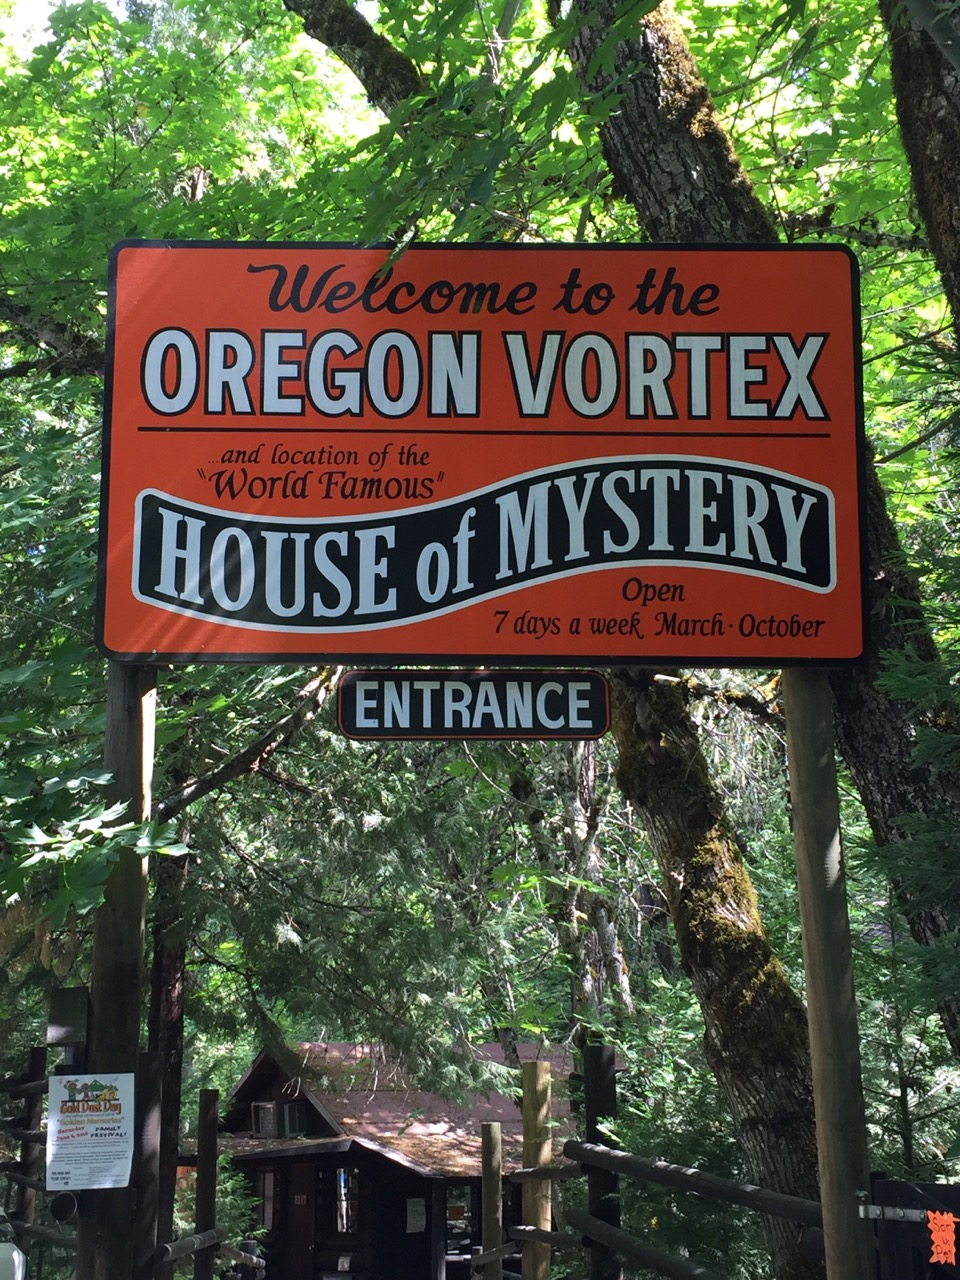 Oregon Vortex House of Mystery